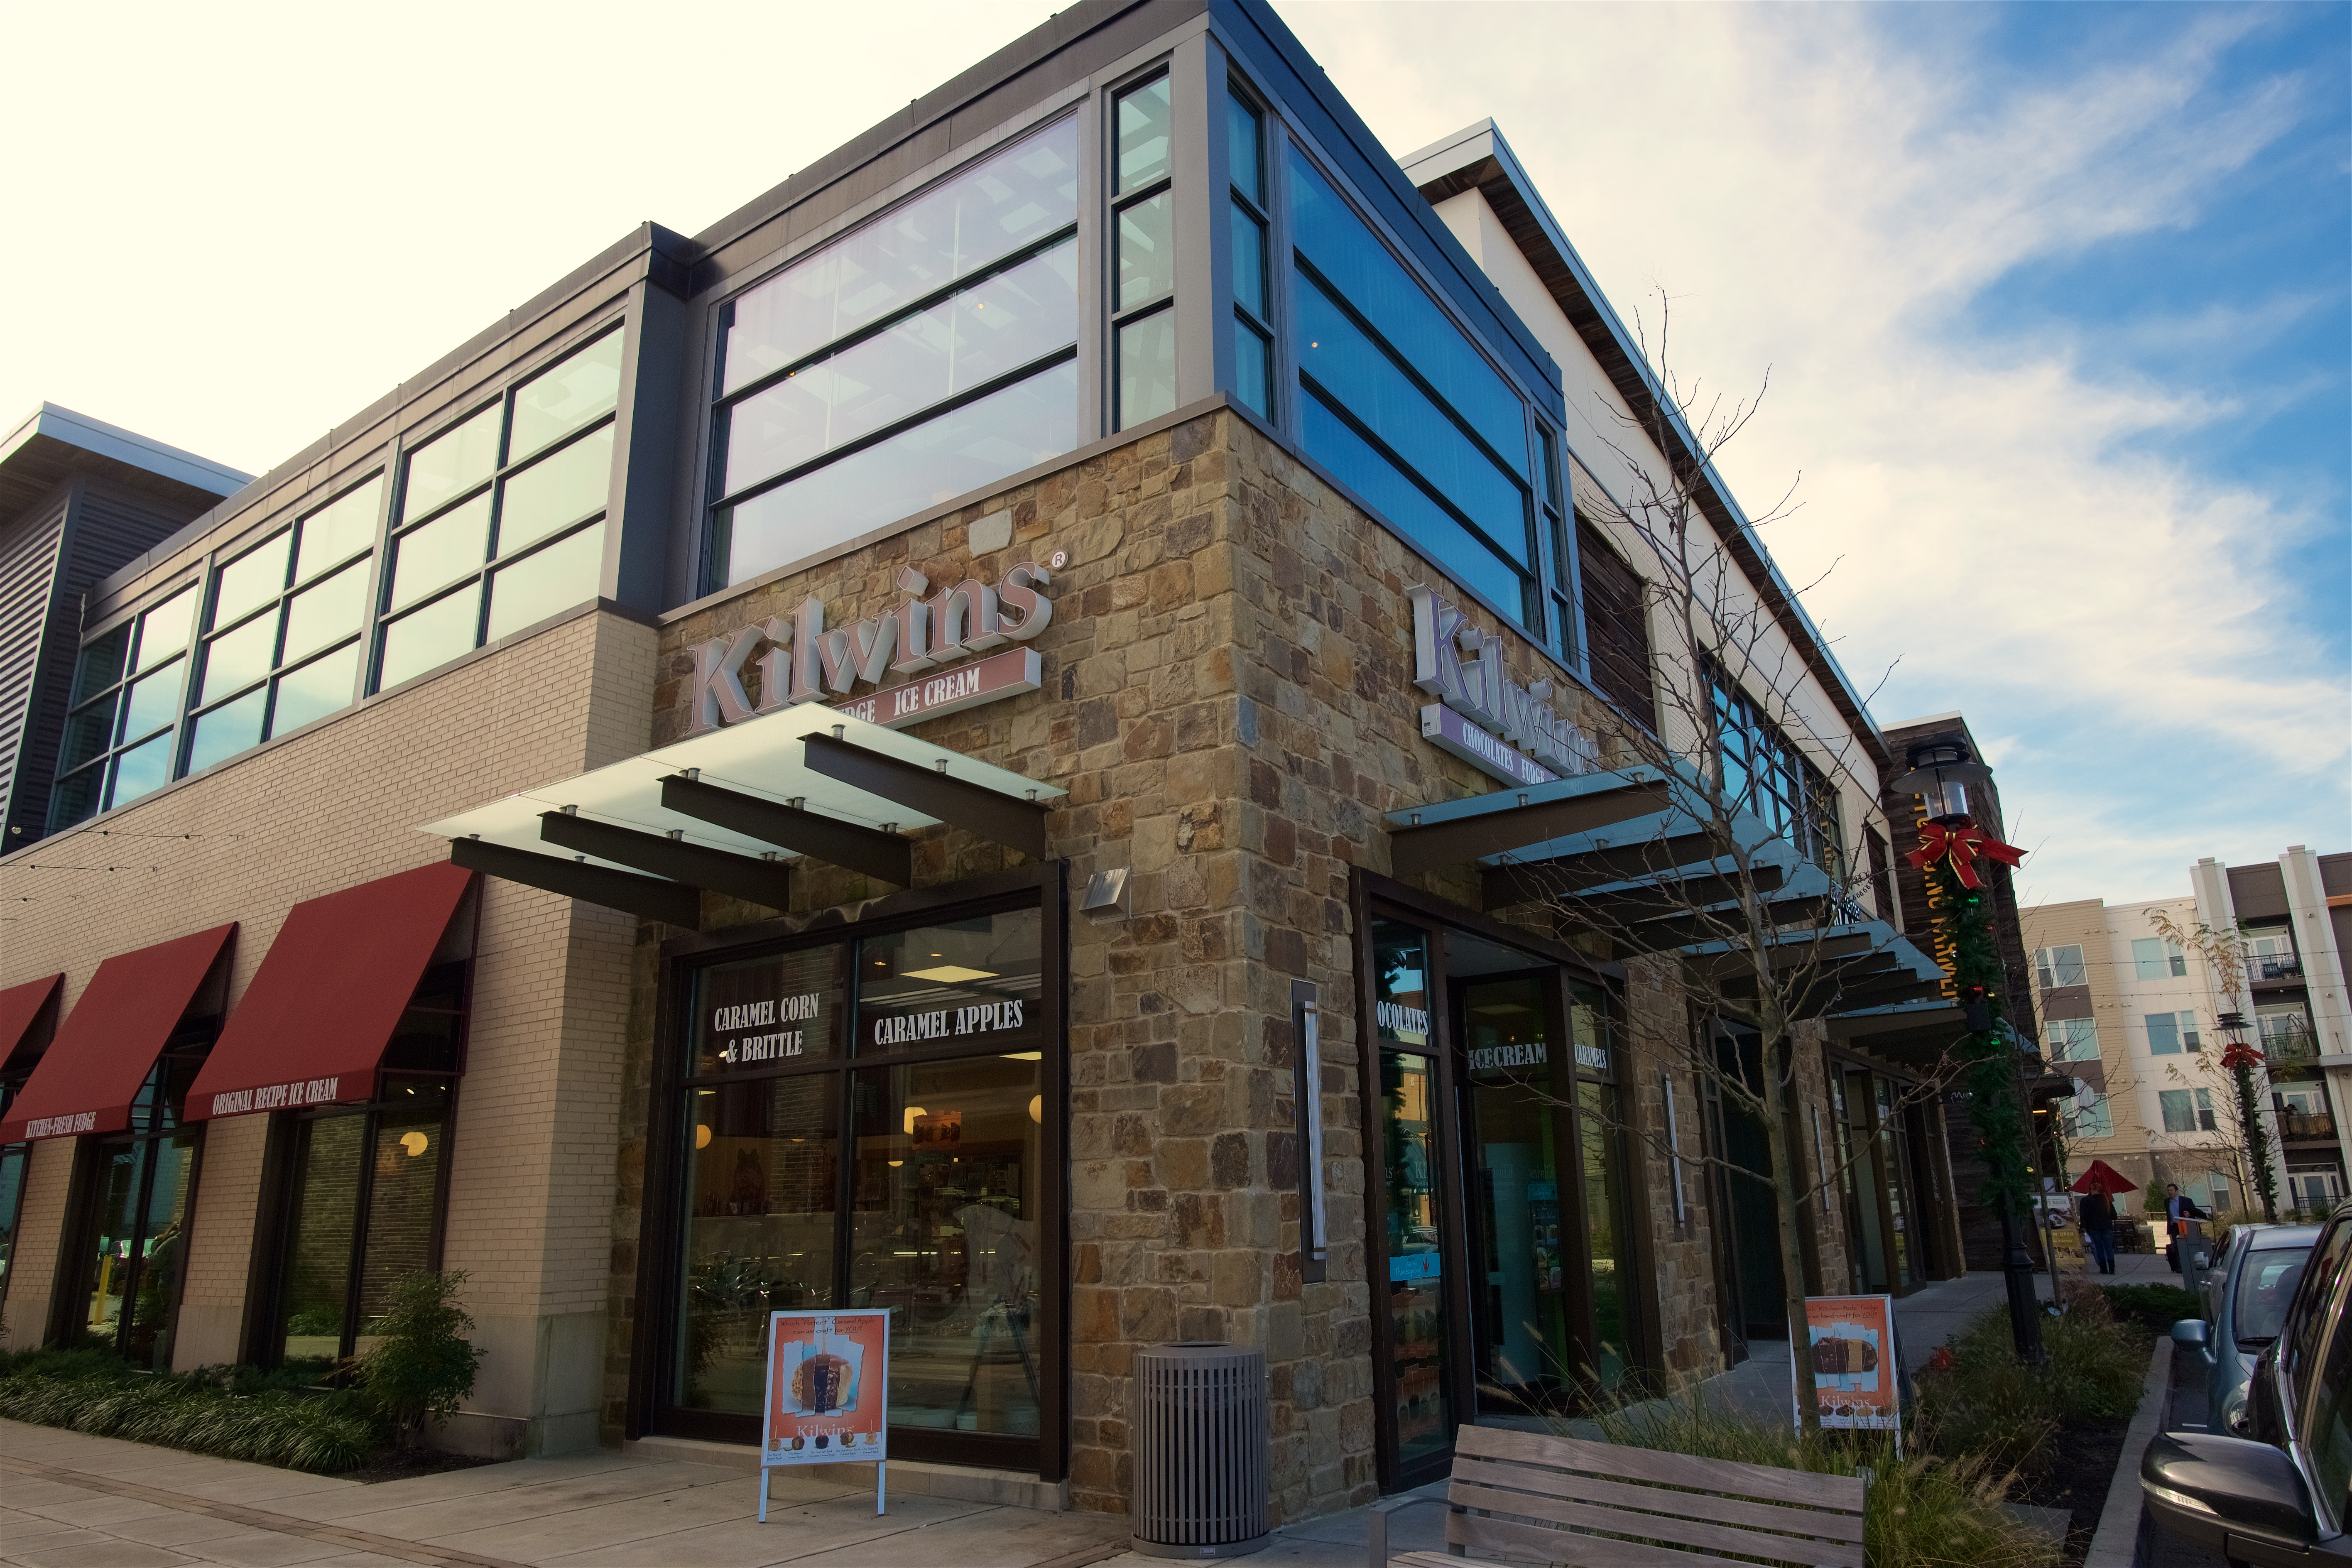 Exterior photo of Kilwins at King of Prussia